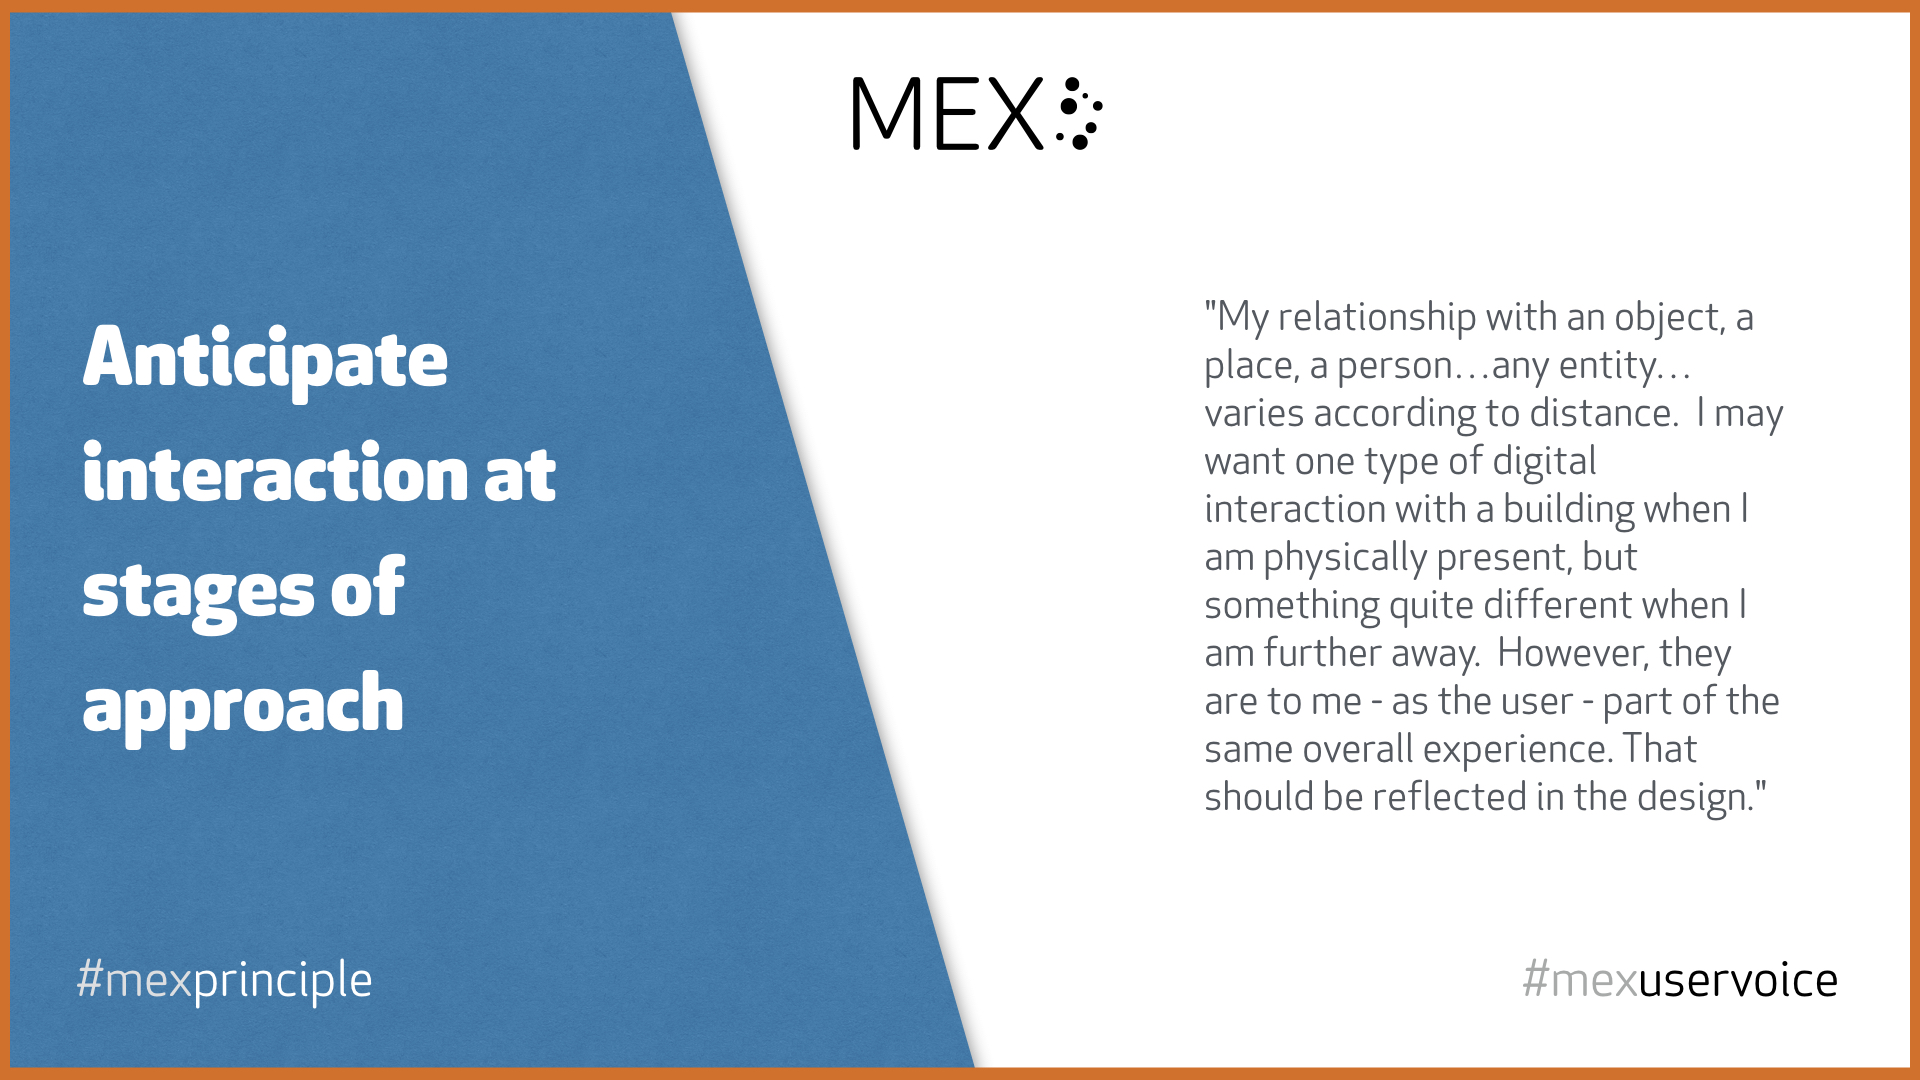 Anticipate interaction at stages of approach #mexprinciple